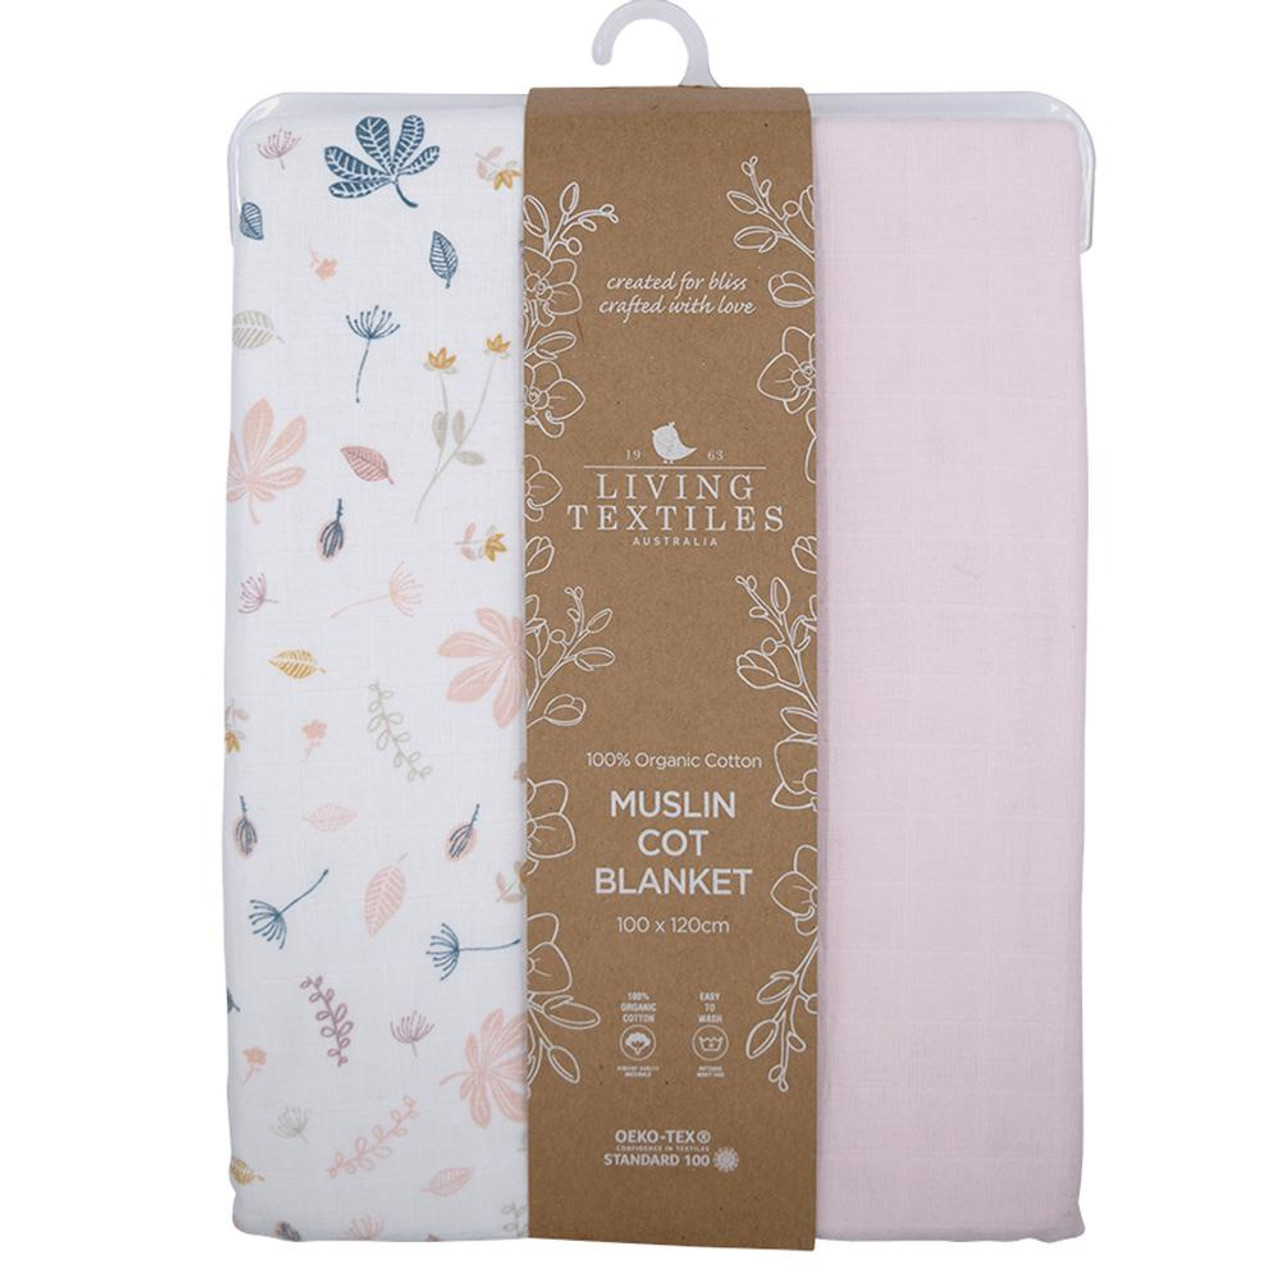 Living Textiles Organic Cotton Muslin Cot Blanket at Baby Barn Discounts Living Textile's muslin blanket crafted from 6 layers of soft and silky 100% organic cotton muslin.